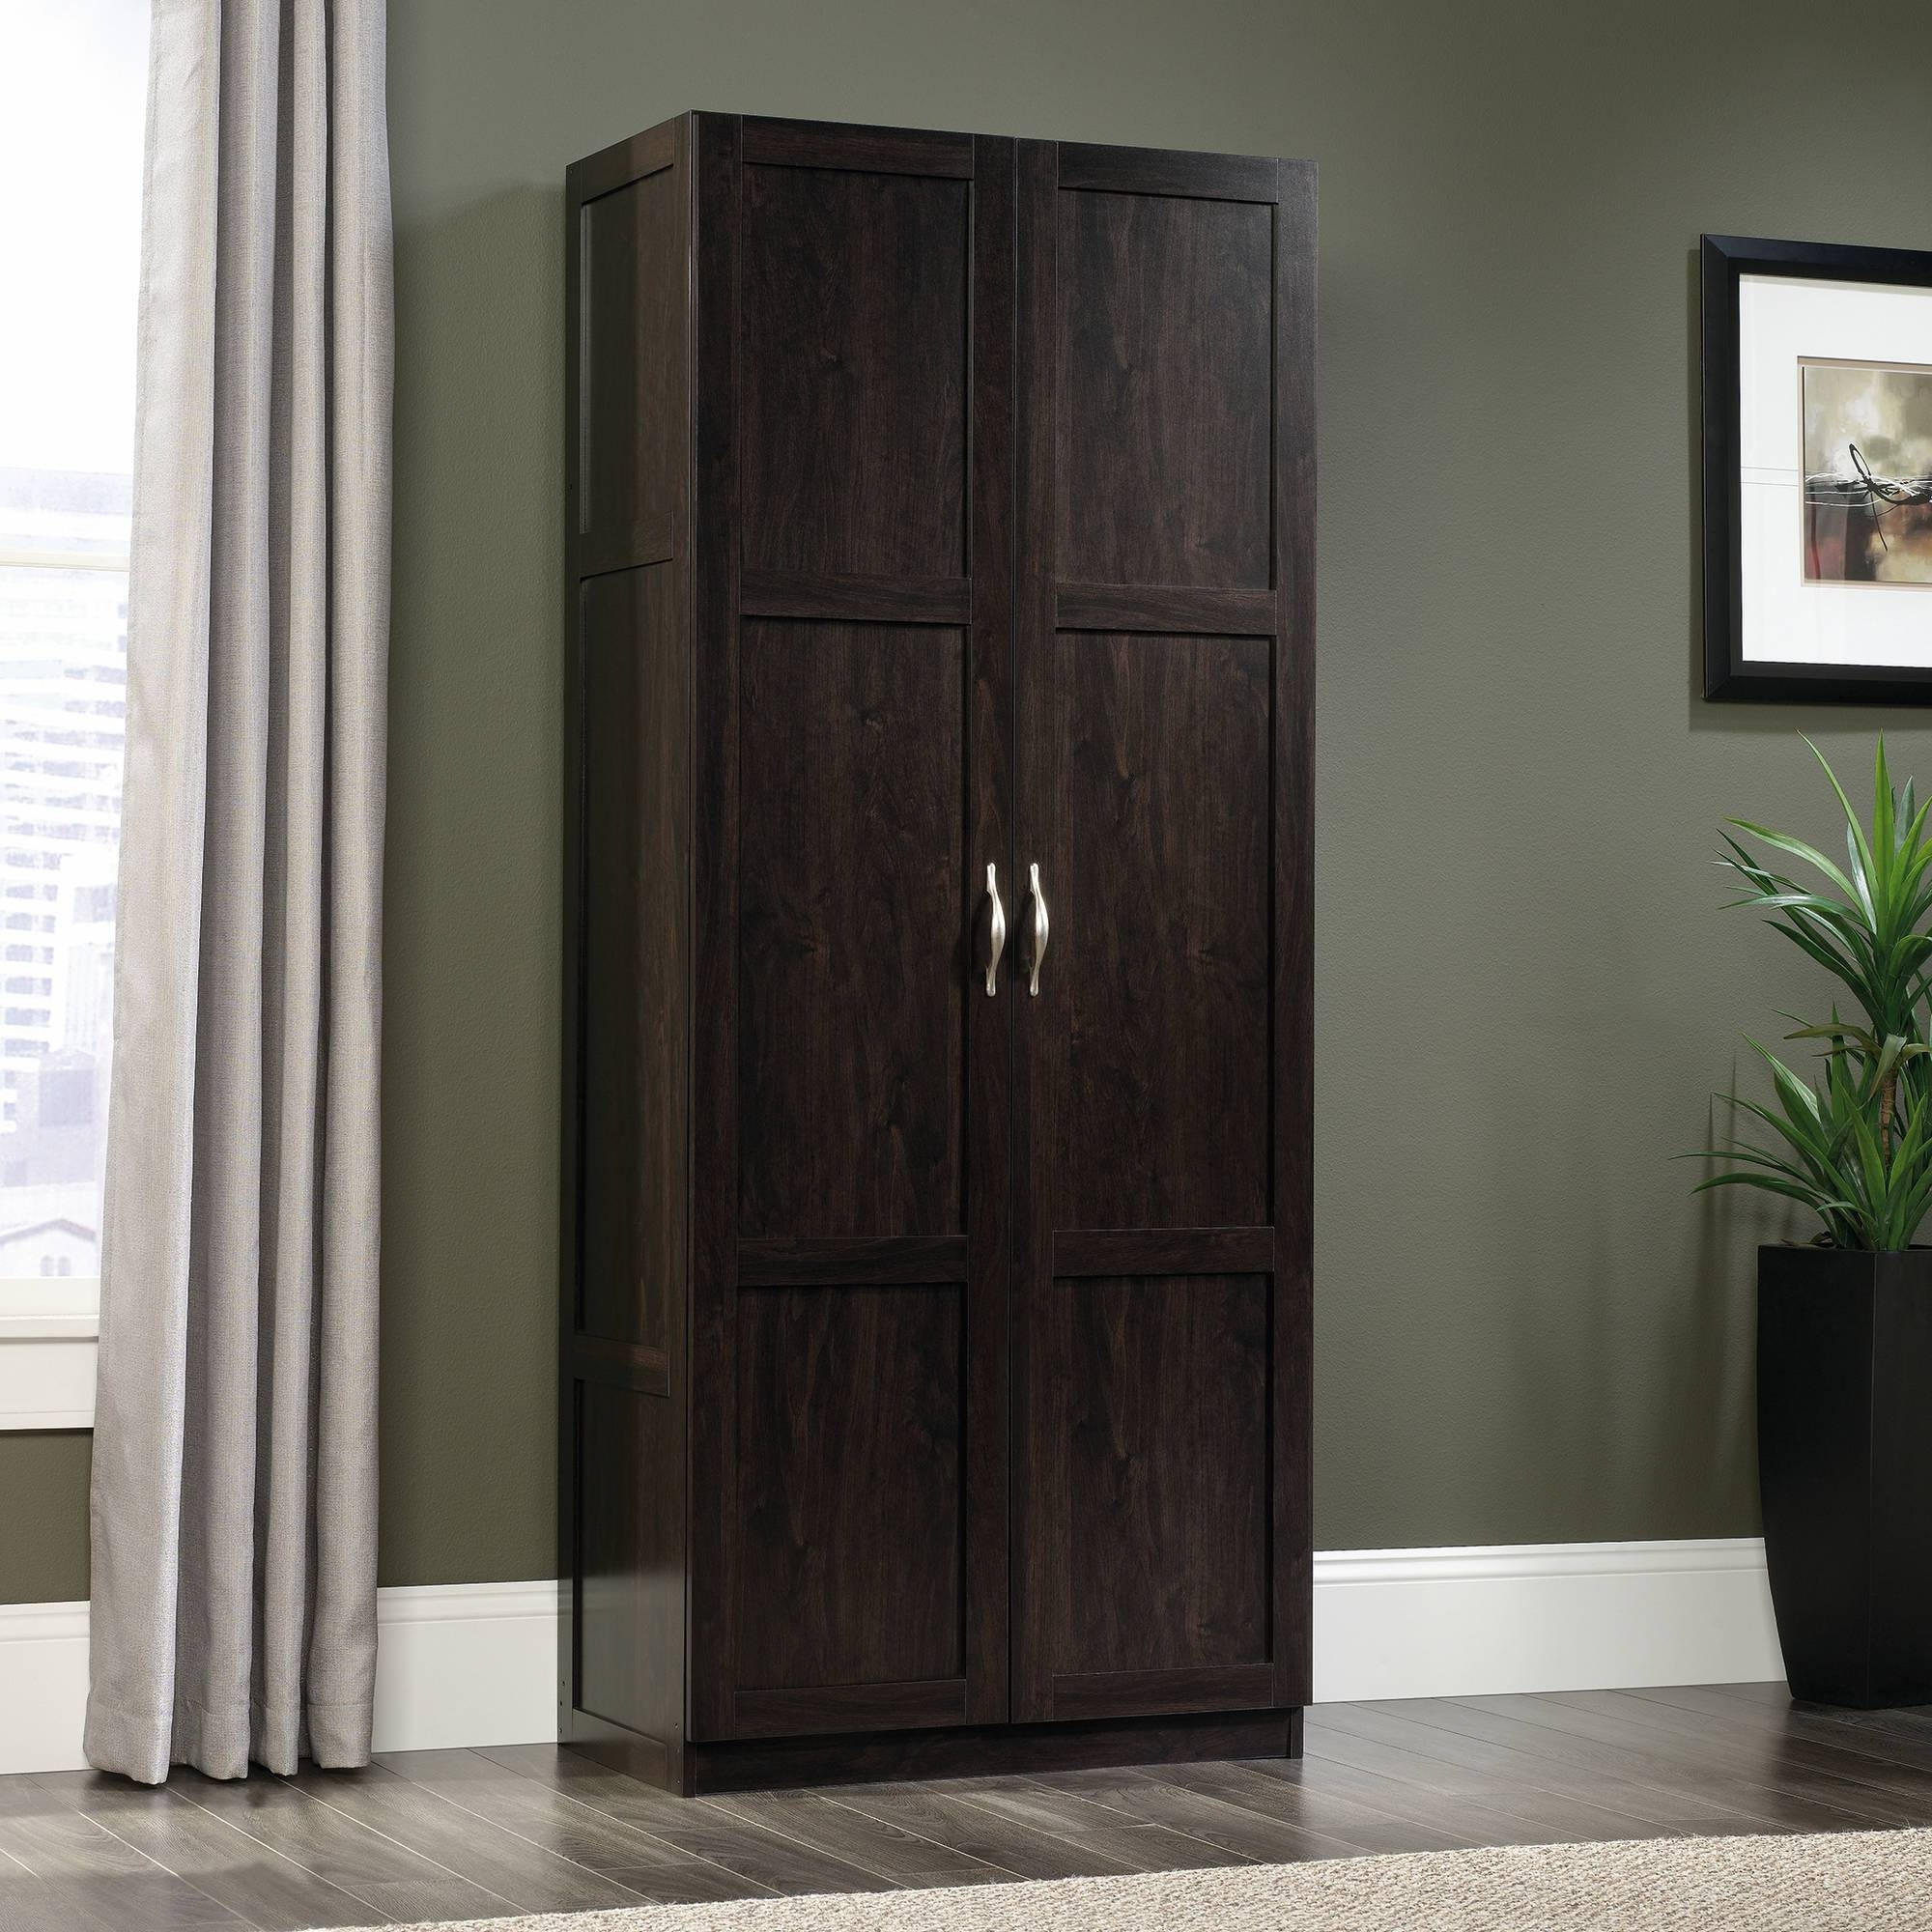 Sauder Storage Cabinet Dark Wood Finish - Walmart pertaining to Solid Dark Wood Wardrobes (Image 19 of 30)